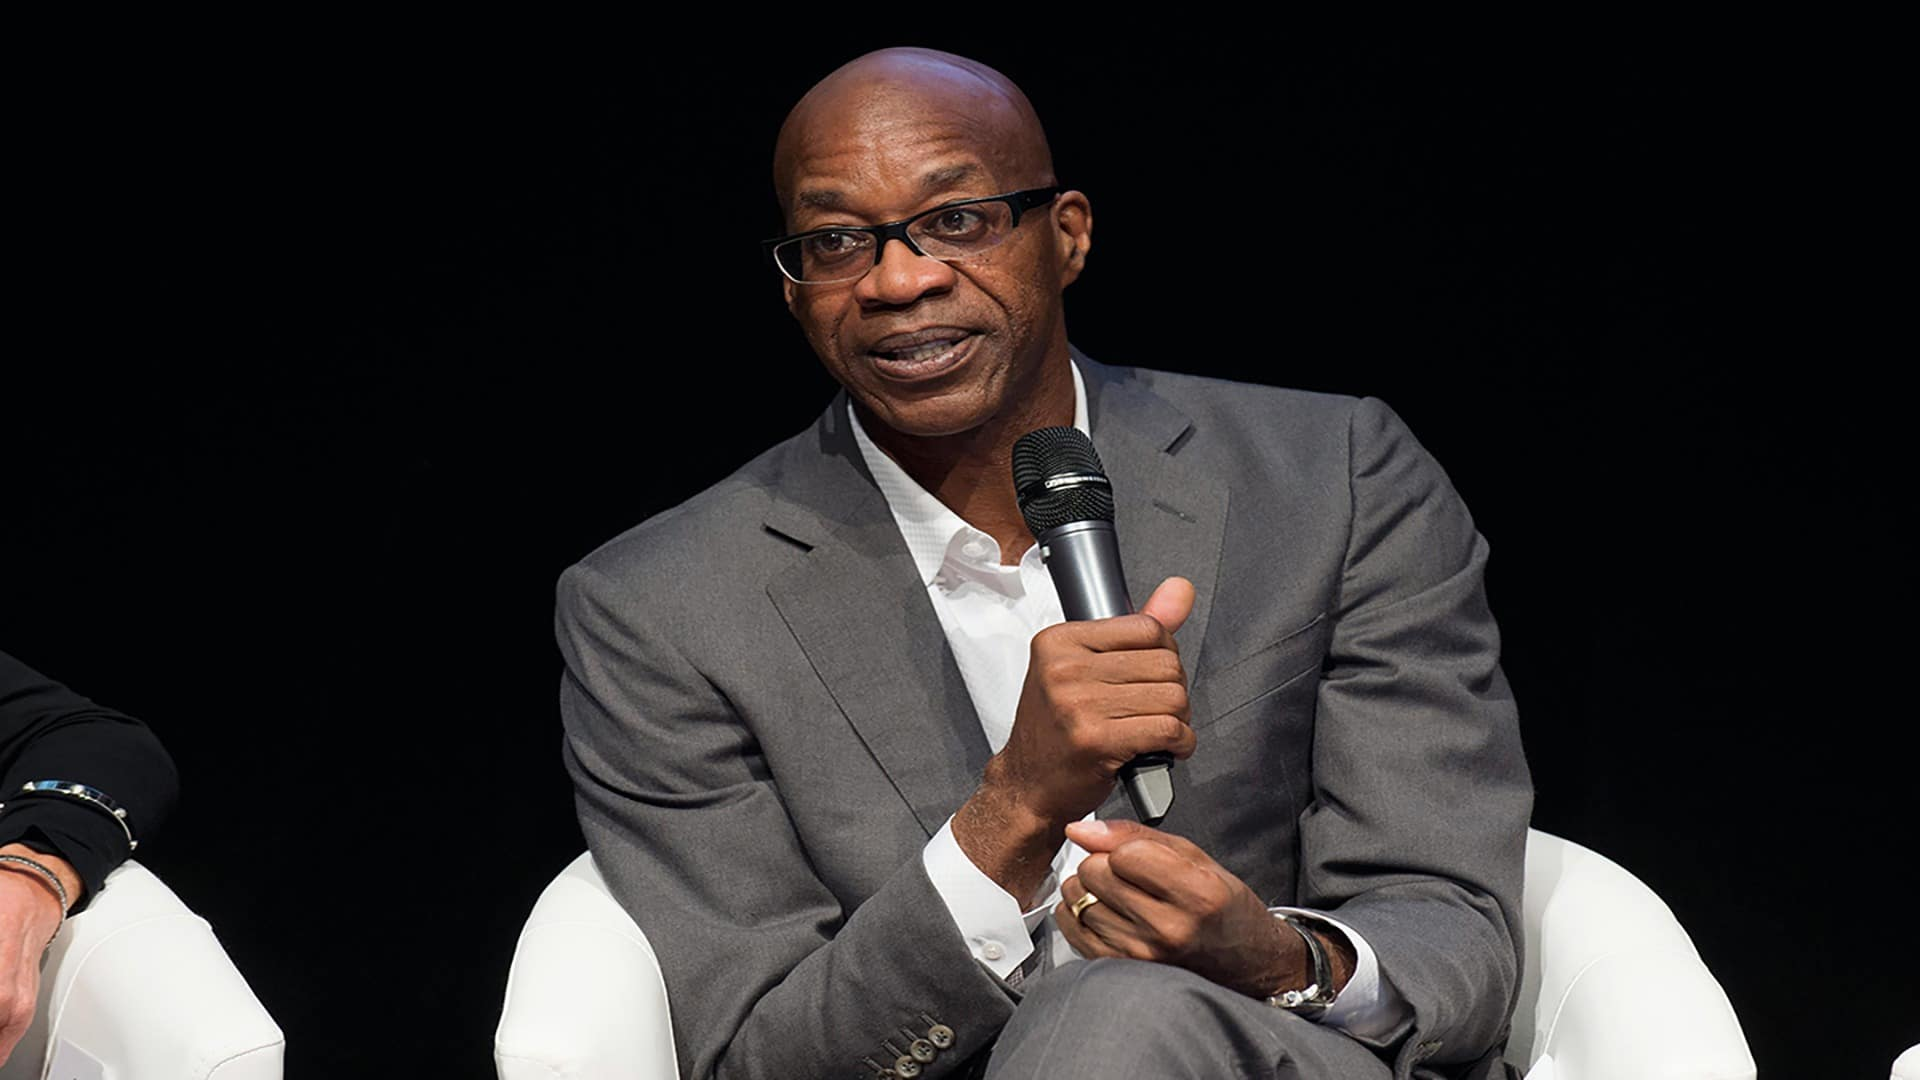 Edwin Moses holds a microphone and speaks